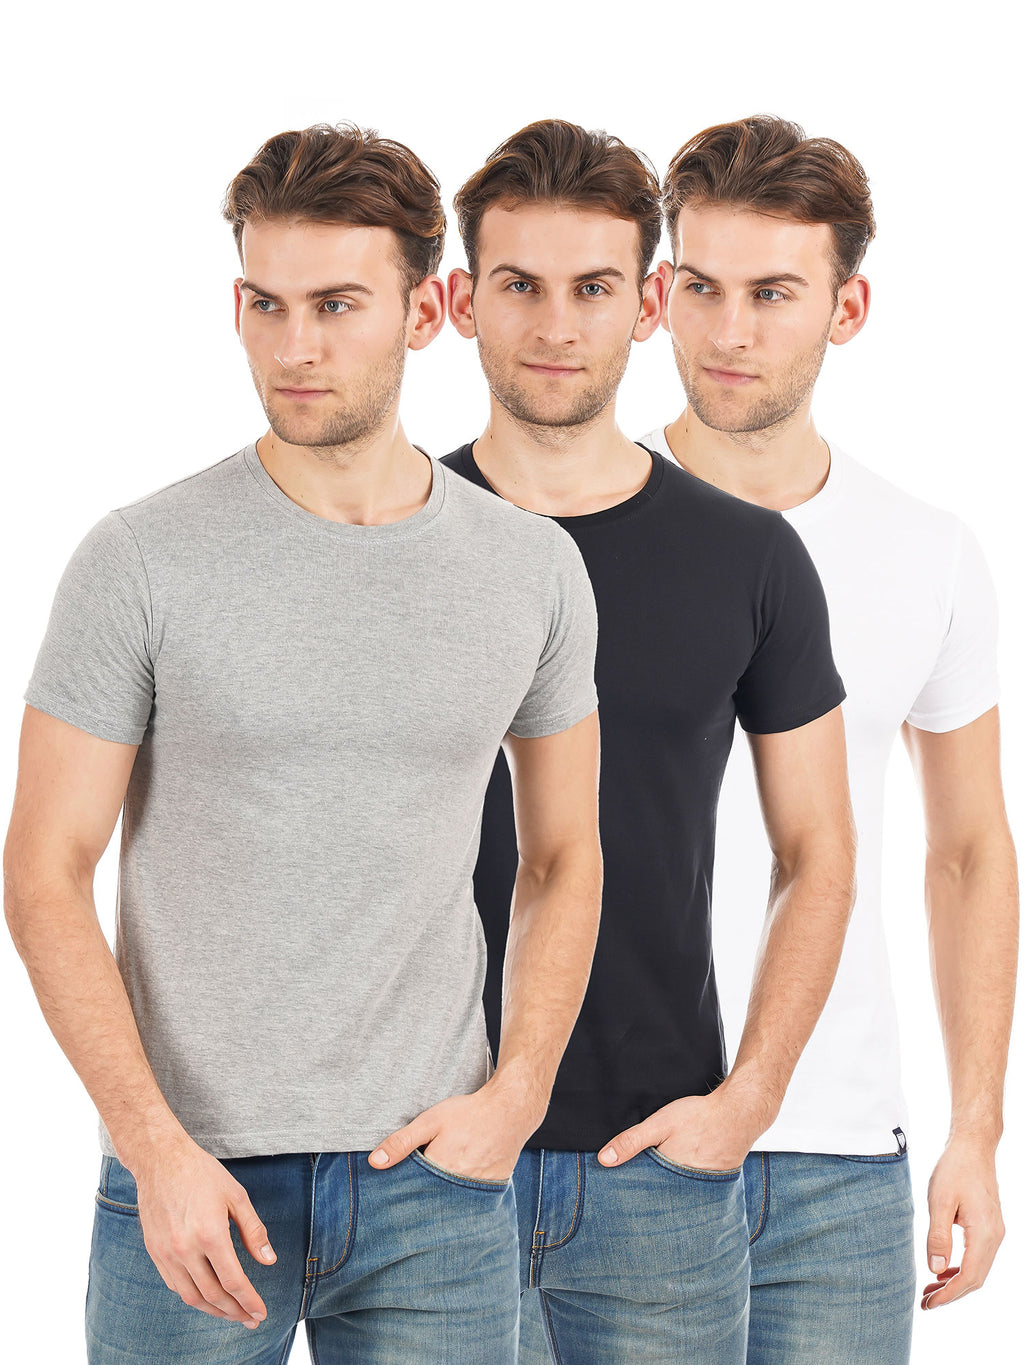 Rock Hooper Men's Half Sleeve Cotton-White, Black, Grey Round Neck Combo Pack of 3 T-Shirts